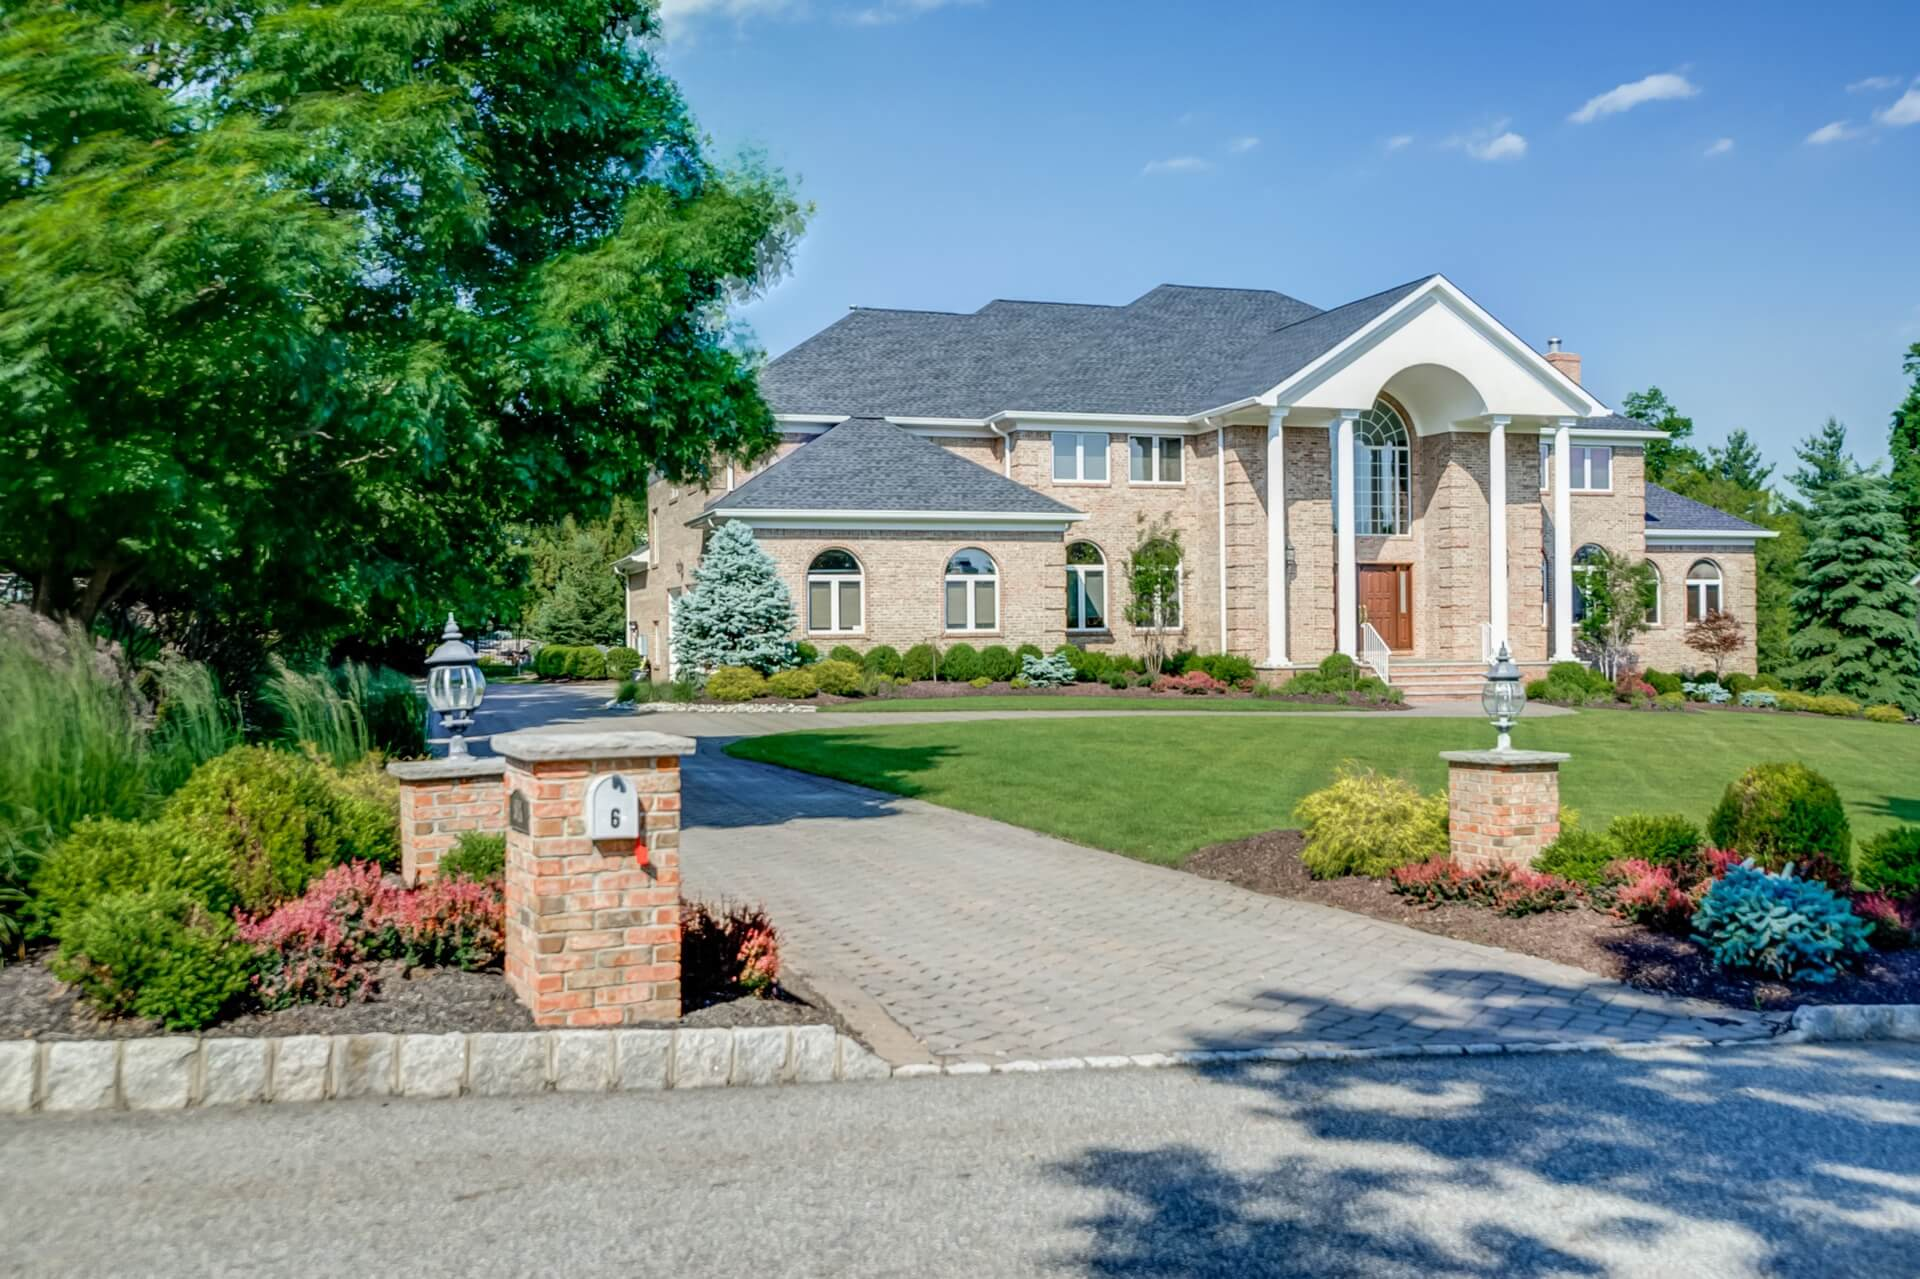 Landscaping with curb appeal